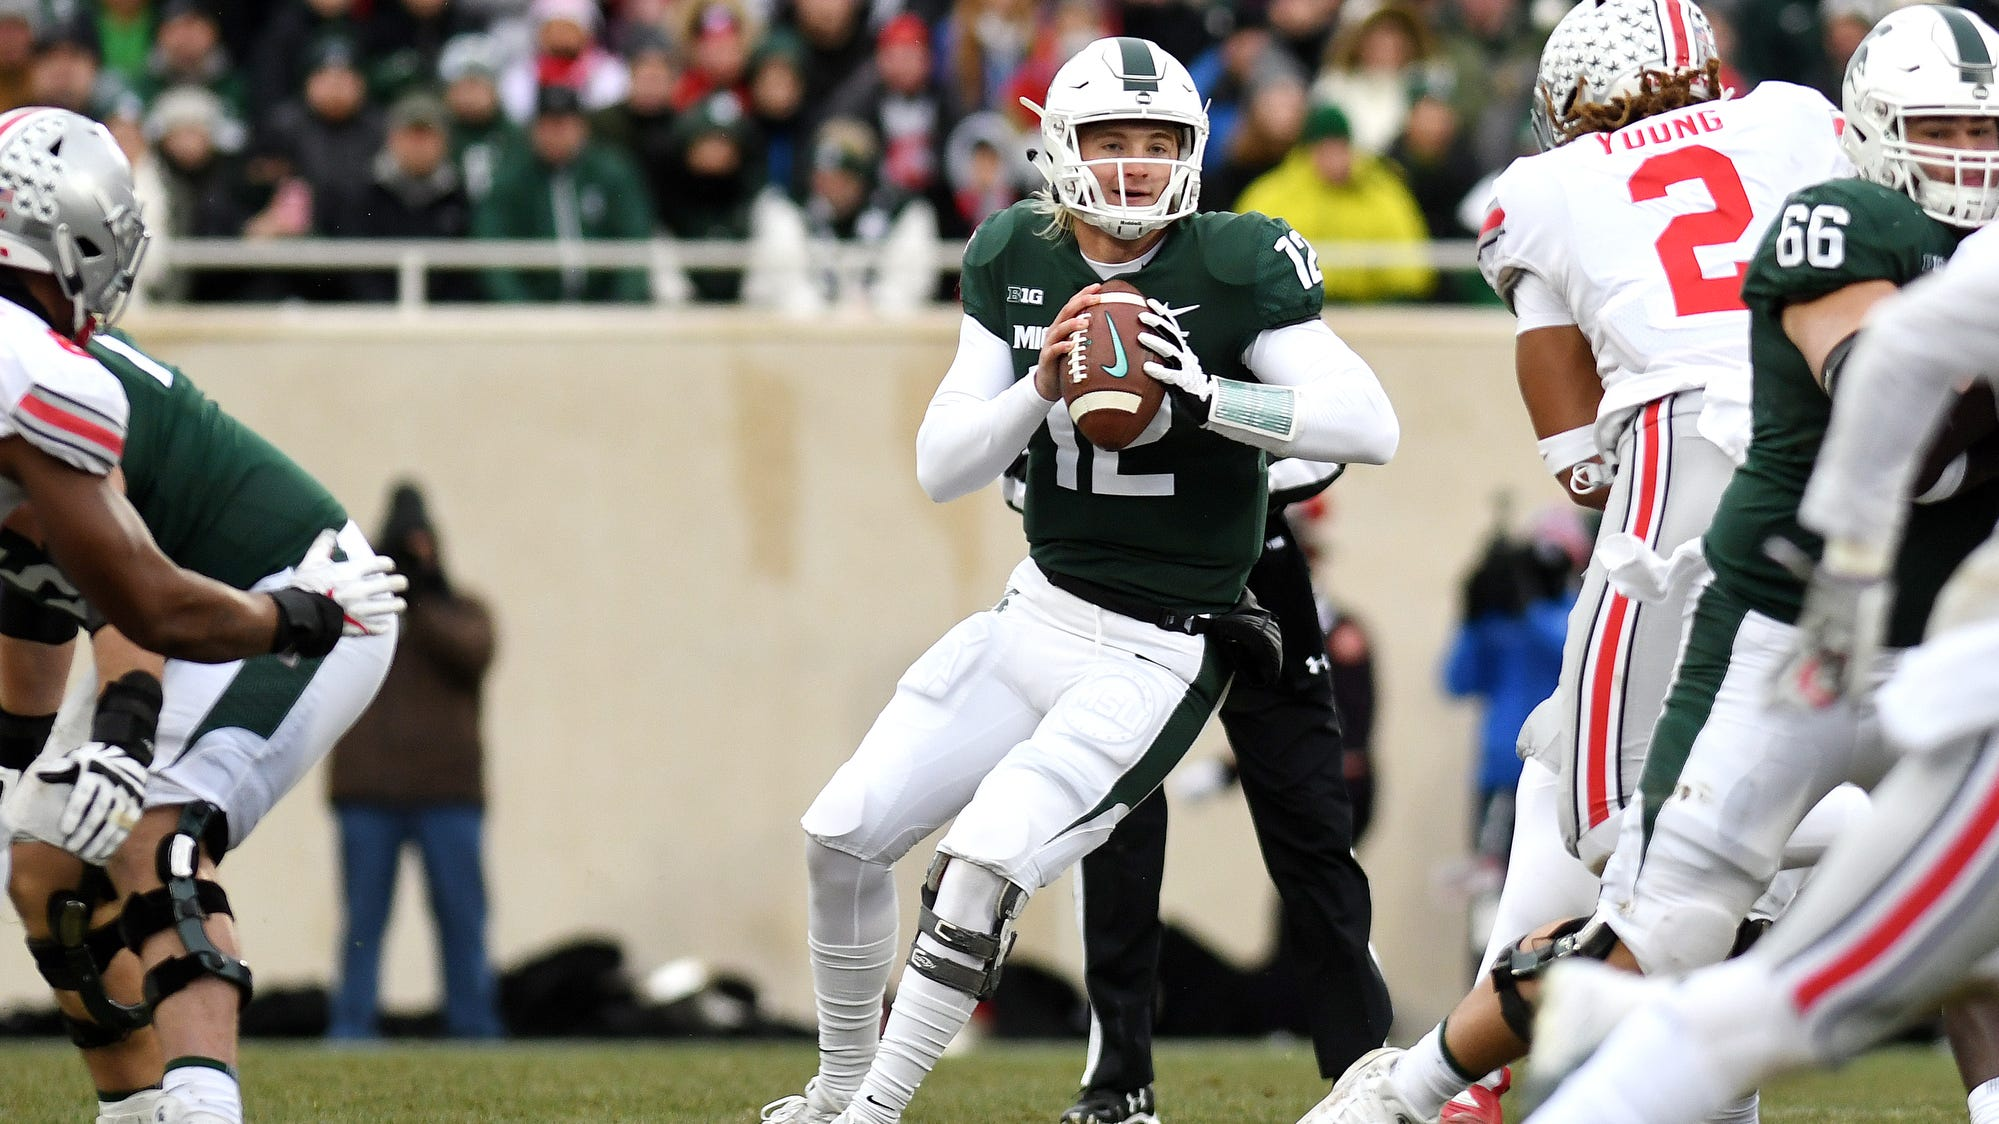 Michigan State Football Falls To Ohio State 3 Quick Takes From Couch